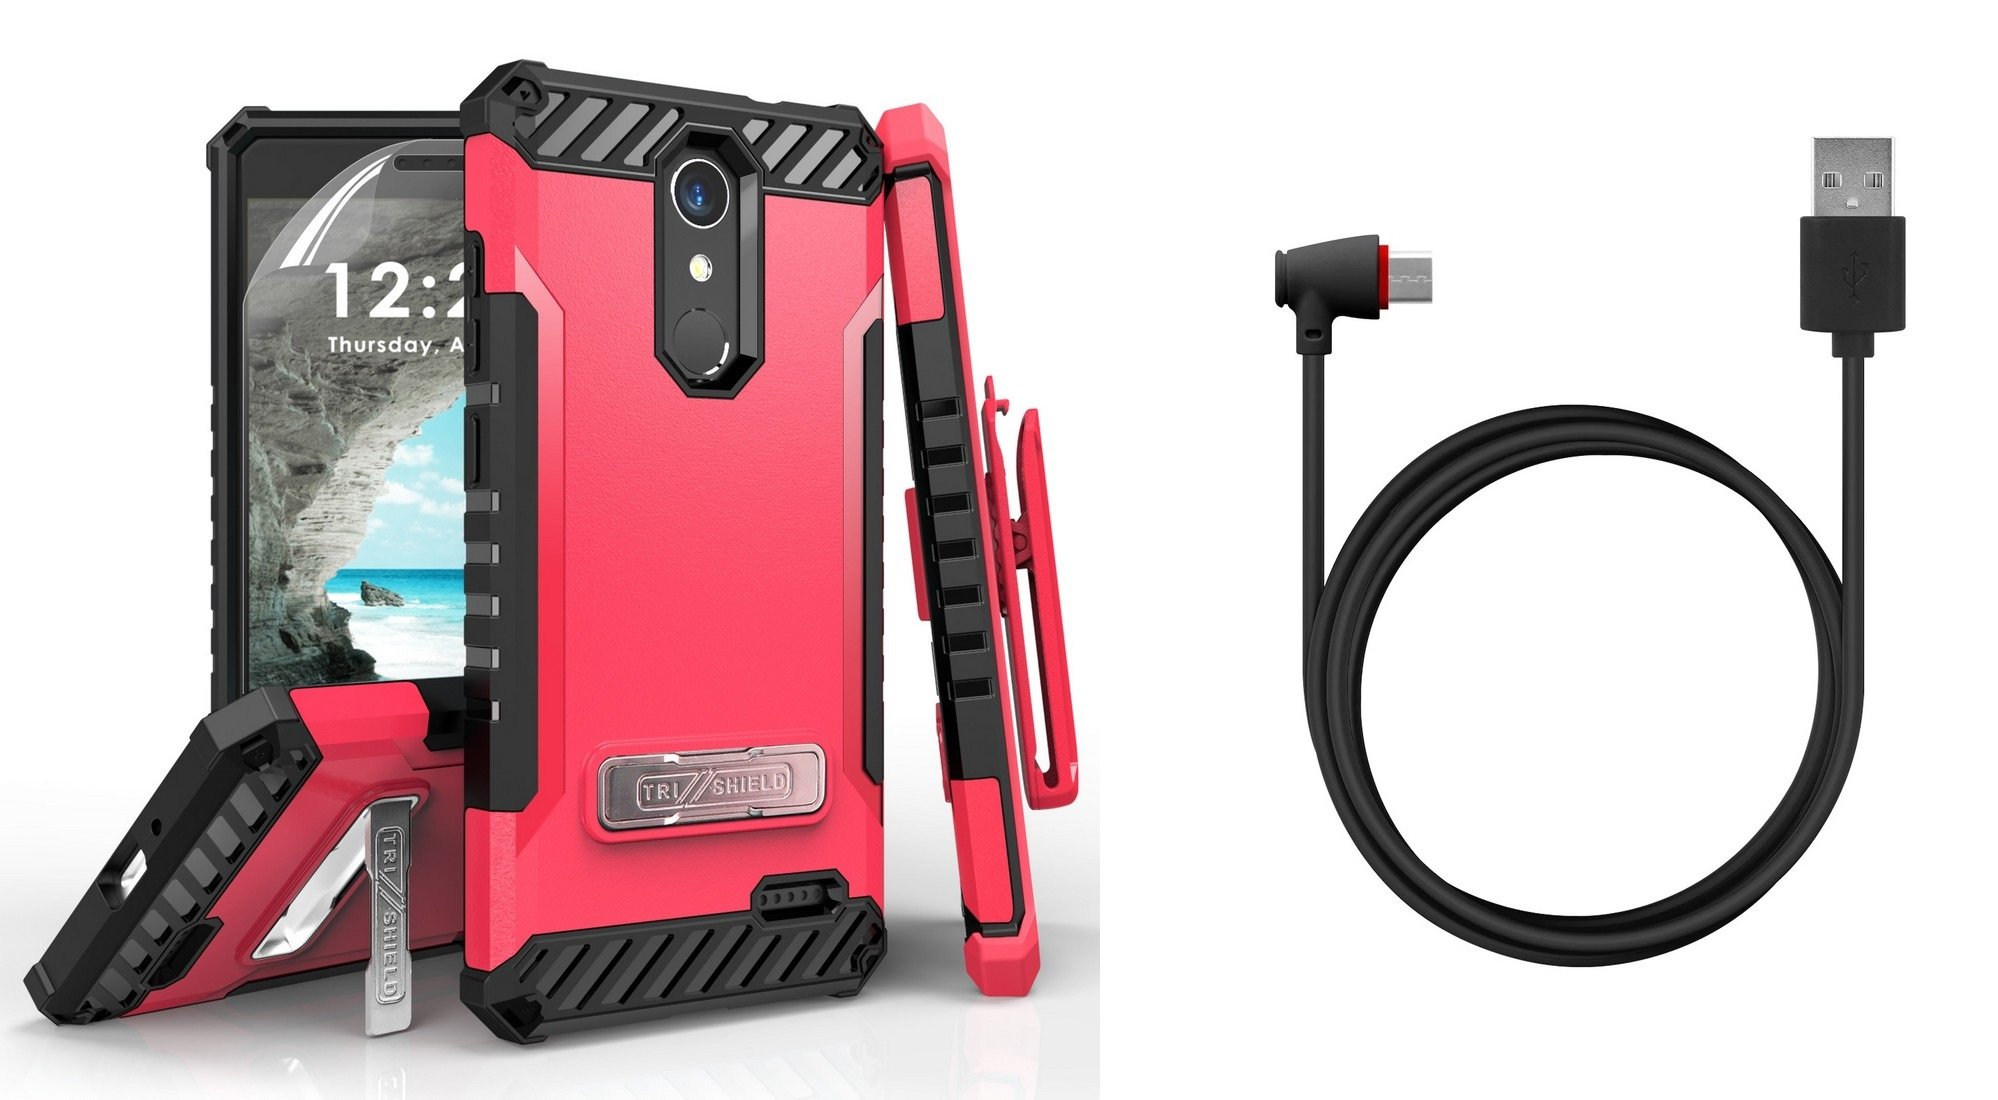 Tri-Shield Military Grade Case Bundle with Belt Clip Holster (Hot Pink/Black), [90 Degree/Right Angle] USB Type C Cable [4 Foot], Atom Cloth for ZTE Blade Spark, ZTE ZMAX One LTE, ZTE Grand X 4